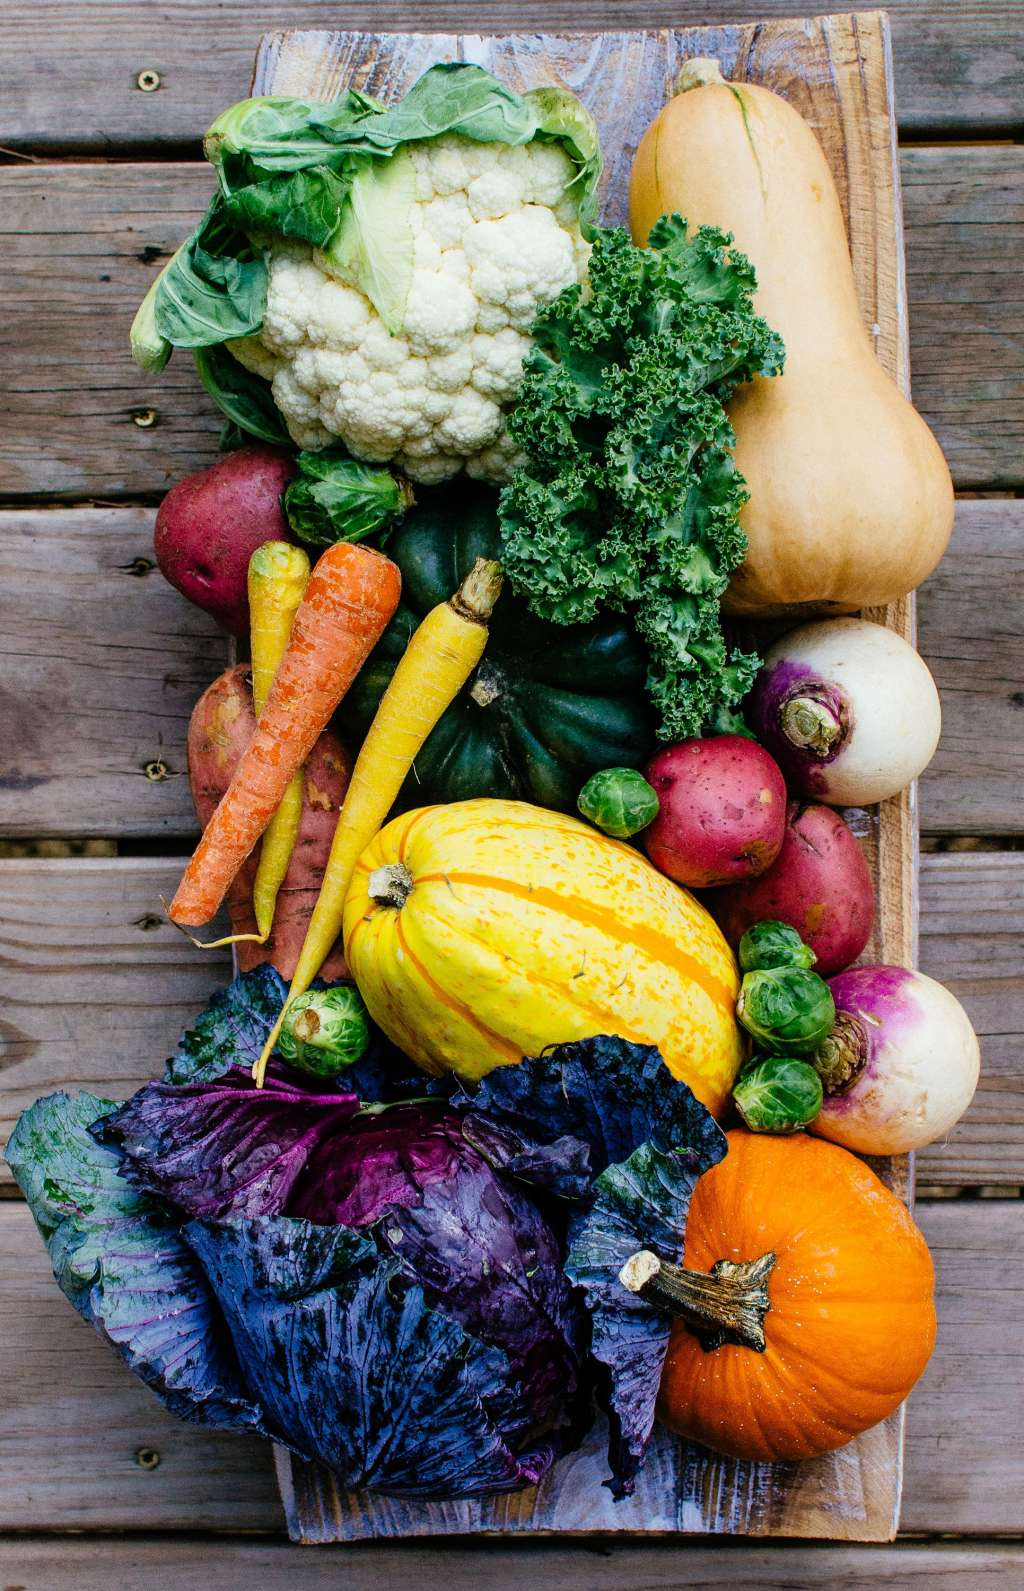 12 Fall Vegetables You Should Know How to Cook